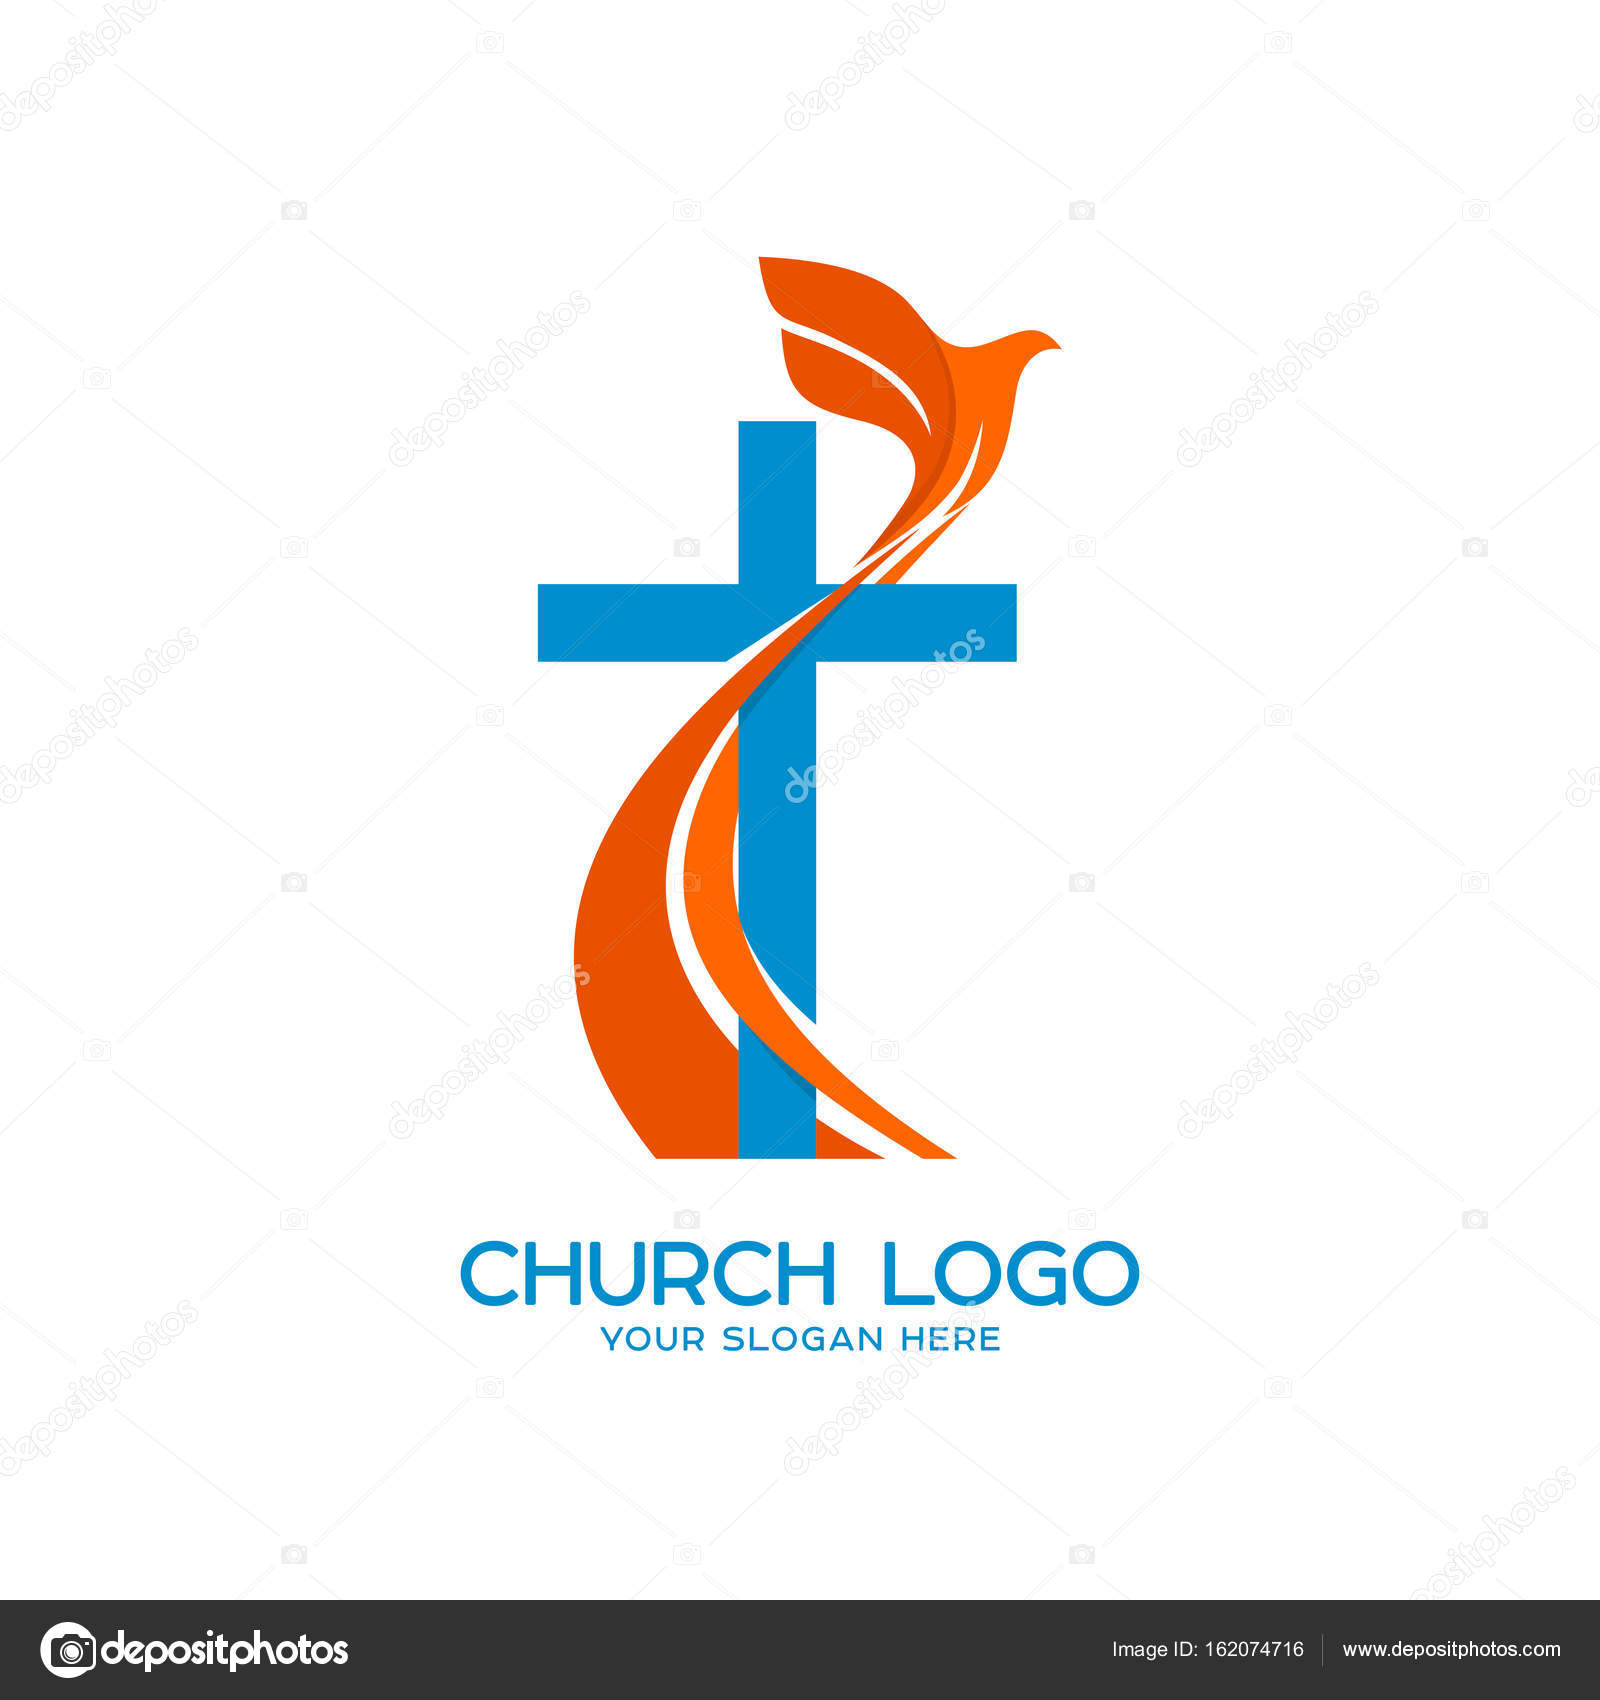 Church logo christian symbols cross and a flying dove a symbol christian symbols cross and a flying dove a symbol of the biocorpaavc